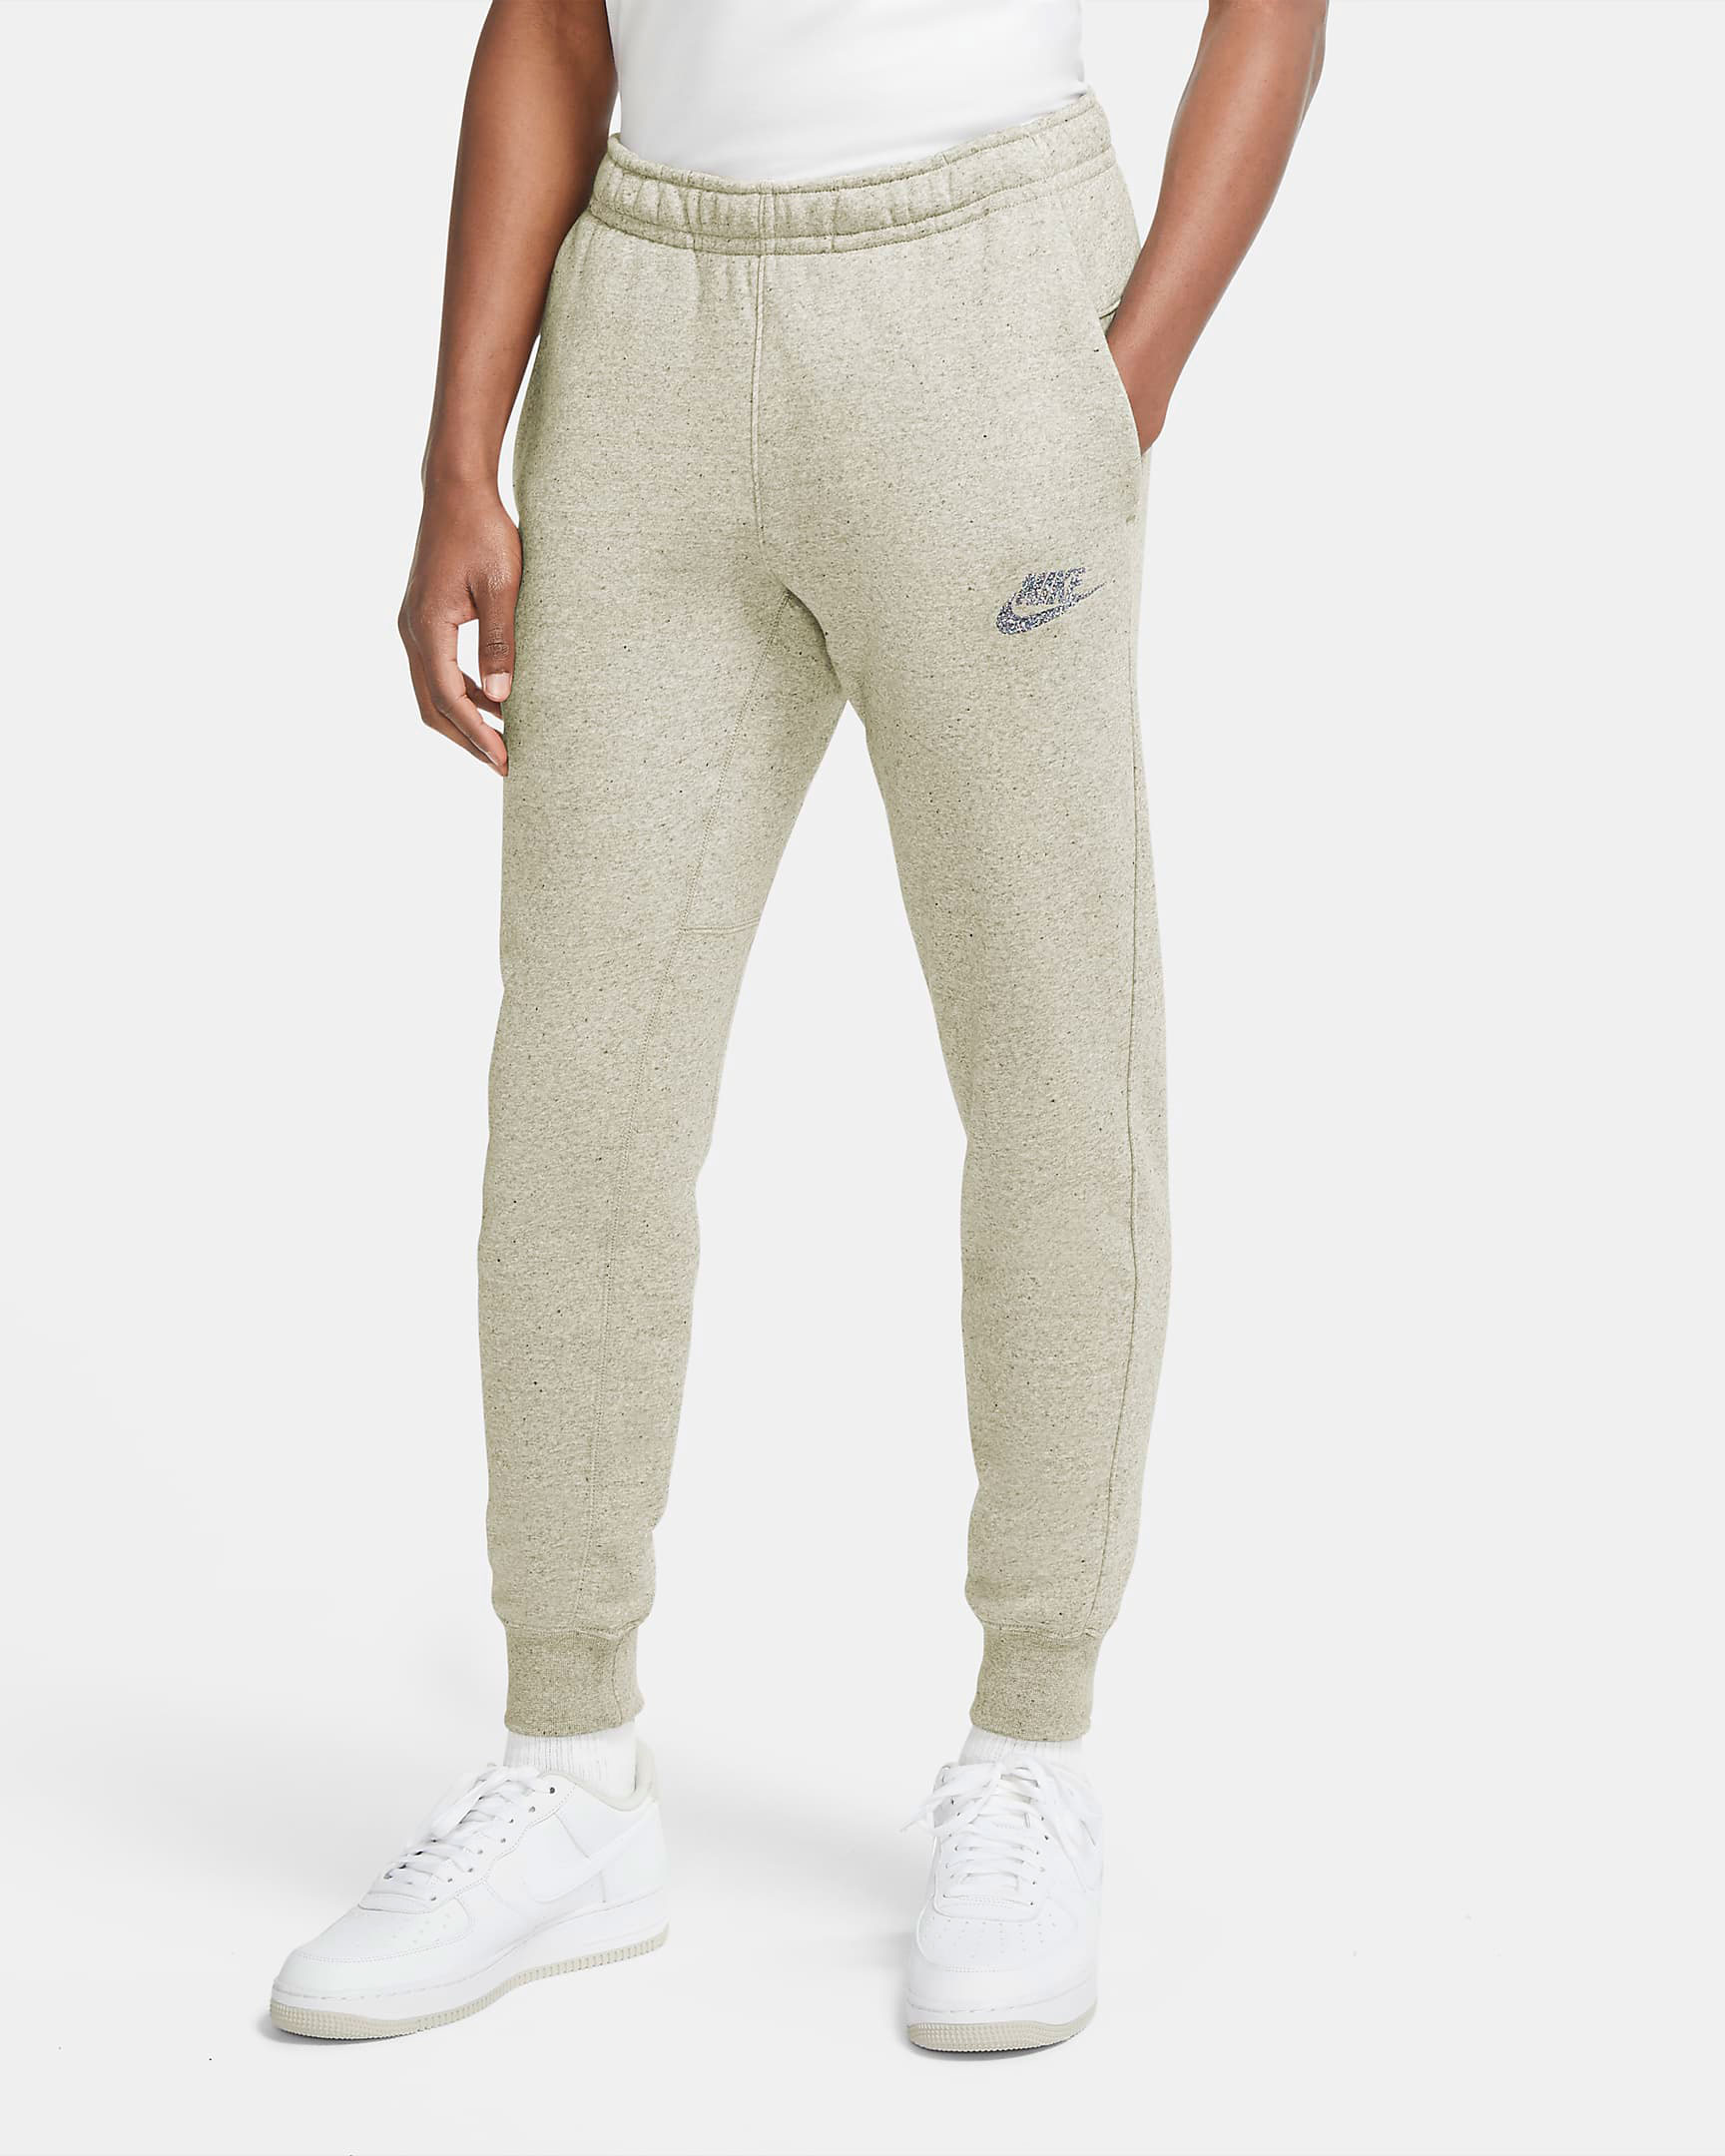 nike-space-hippie-jogger-pants-beige